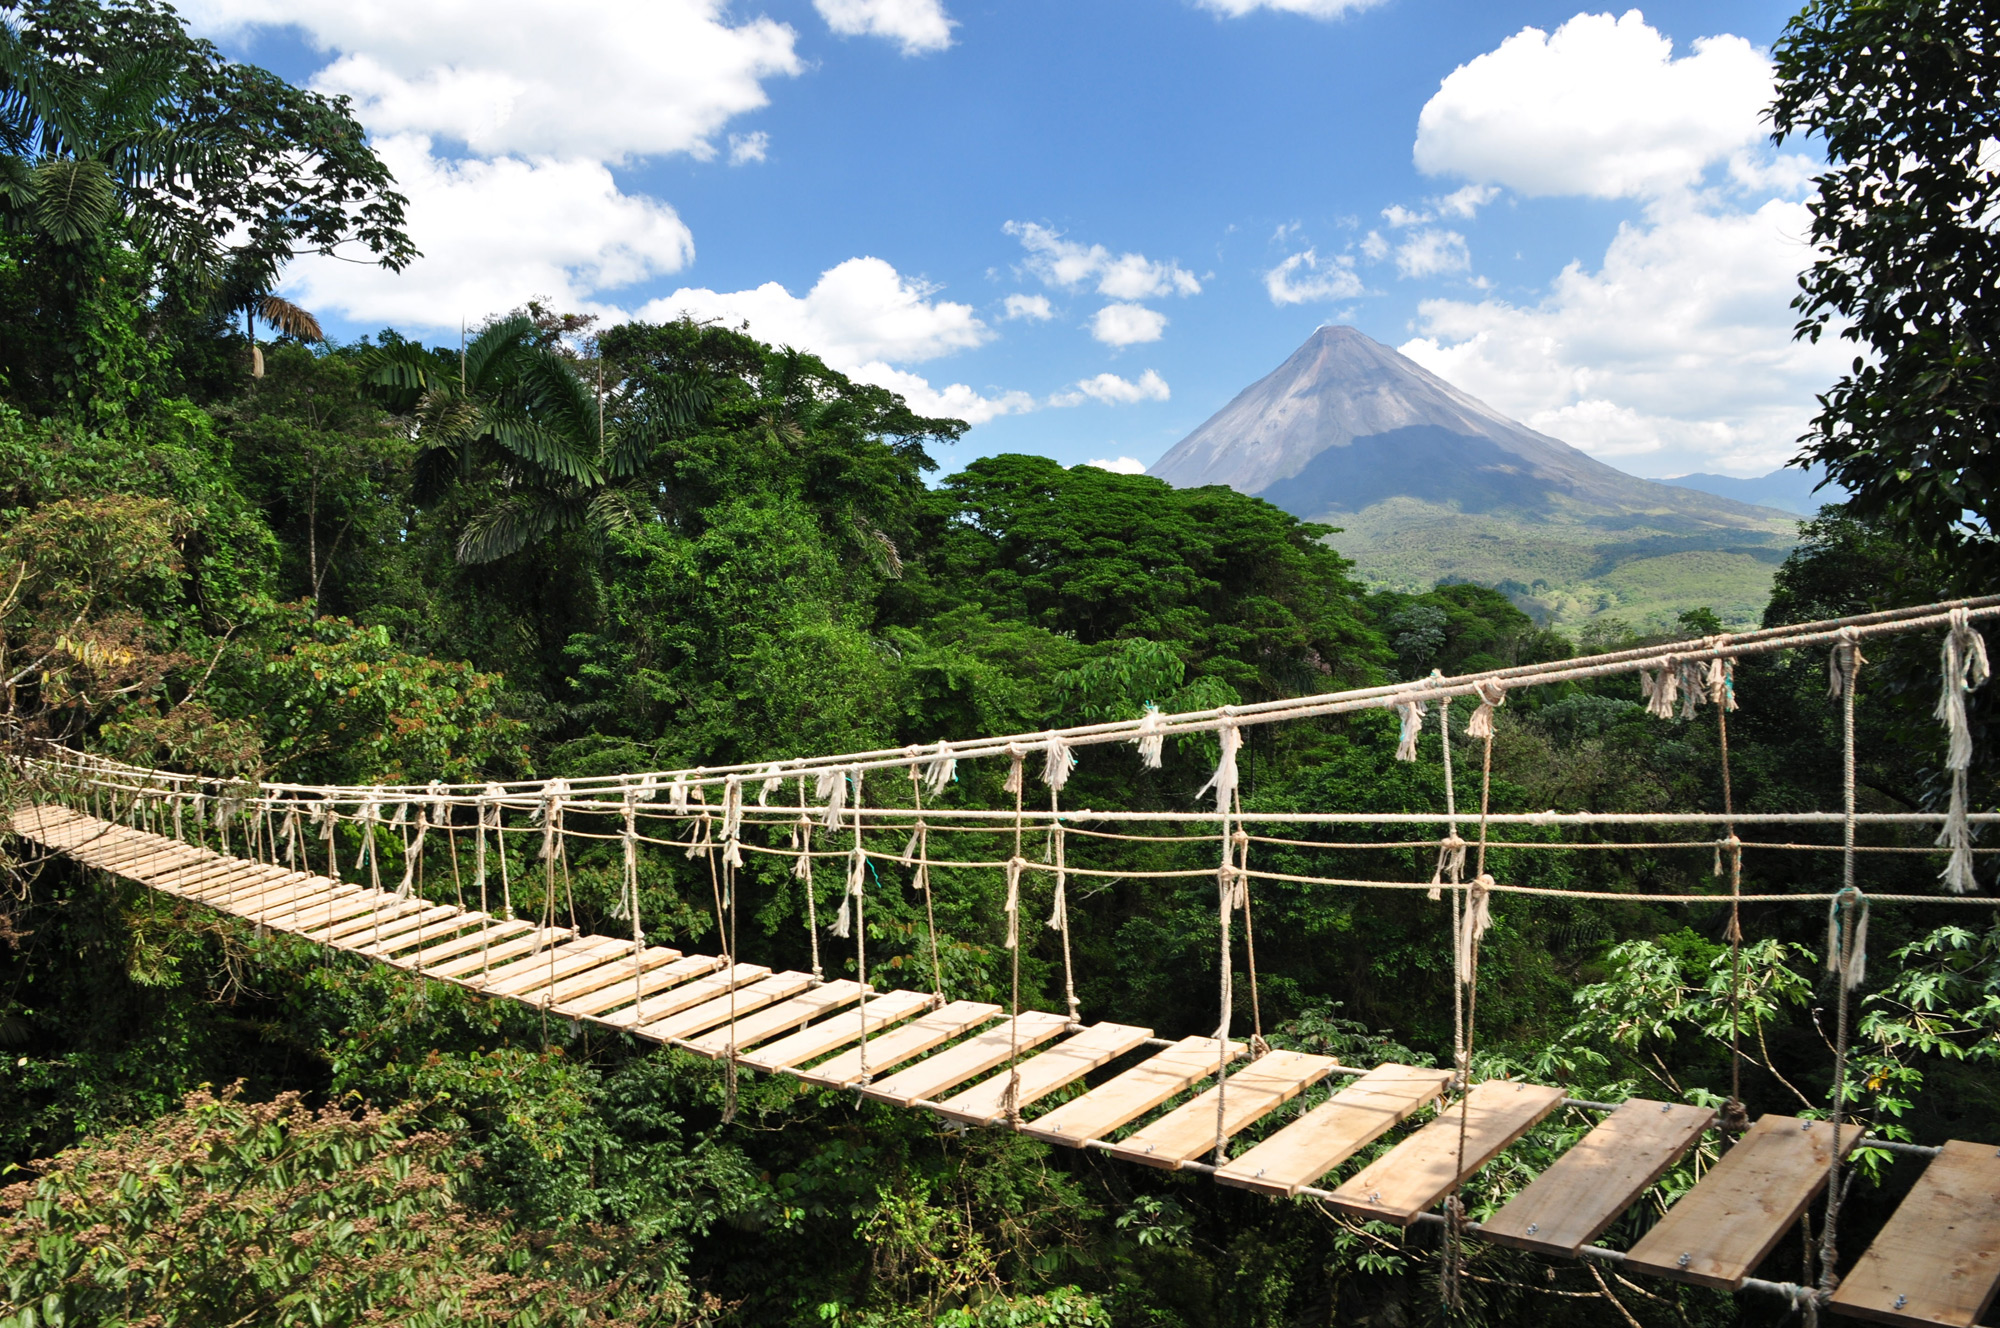 Costa Rica choose to shift to the renewable energy and the care of the environment